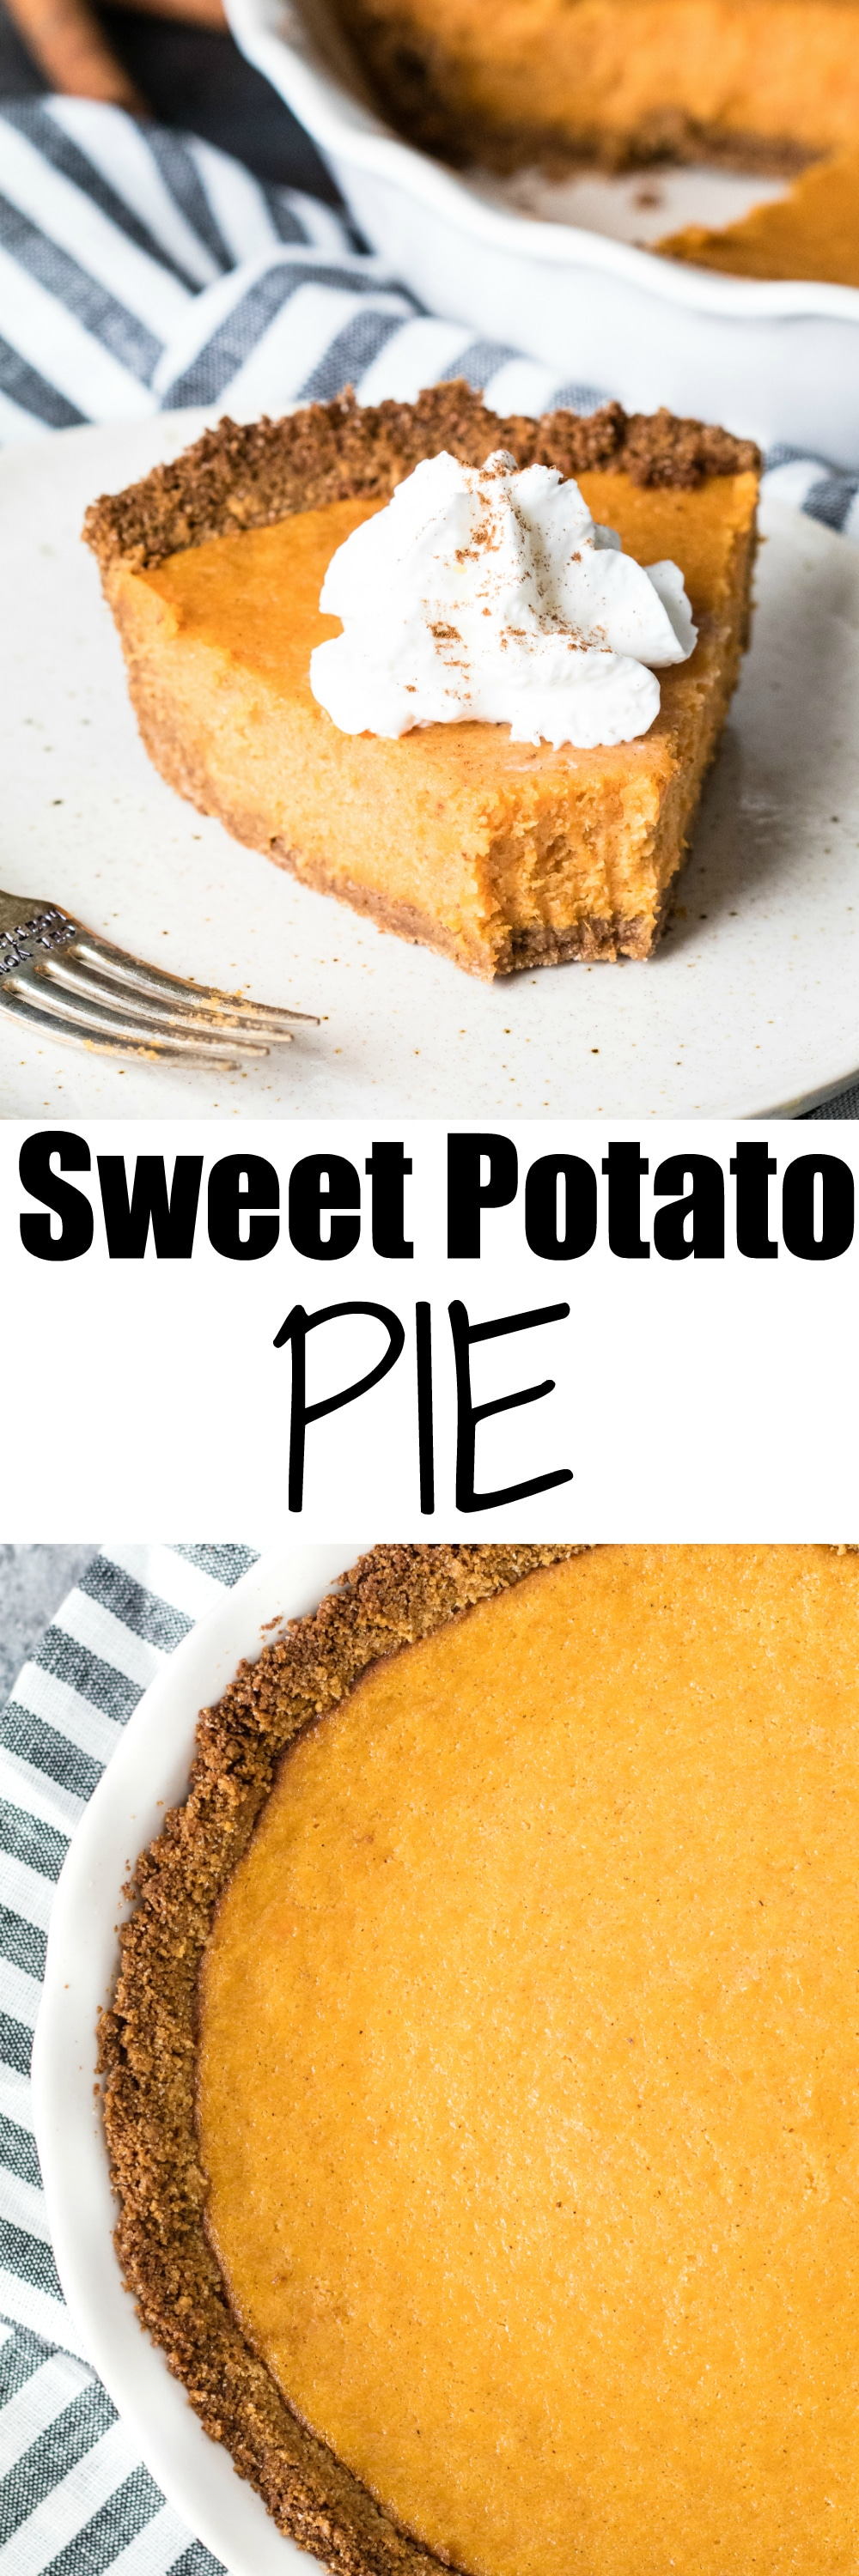 Easy Sweet Potato Pie Recipe (So Simple!) | Kroll's Korner